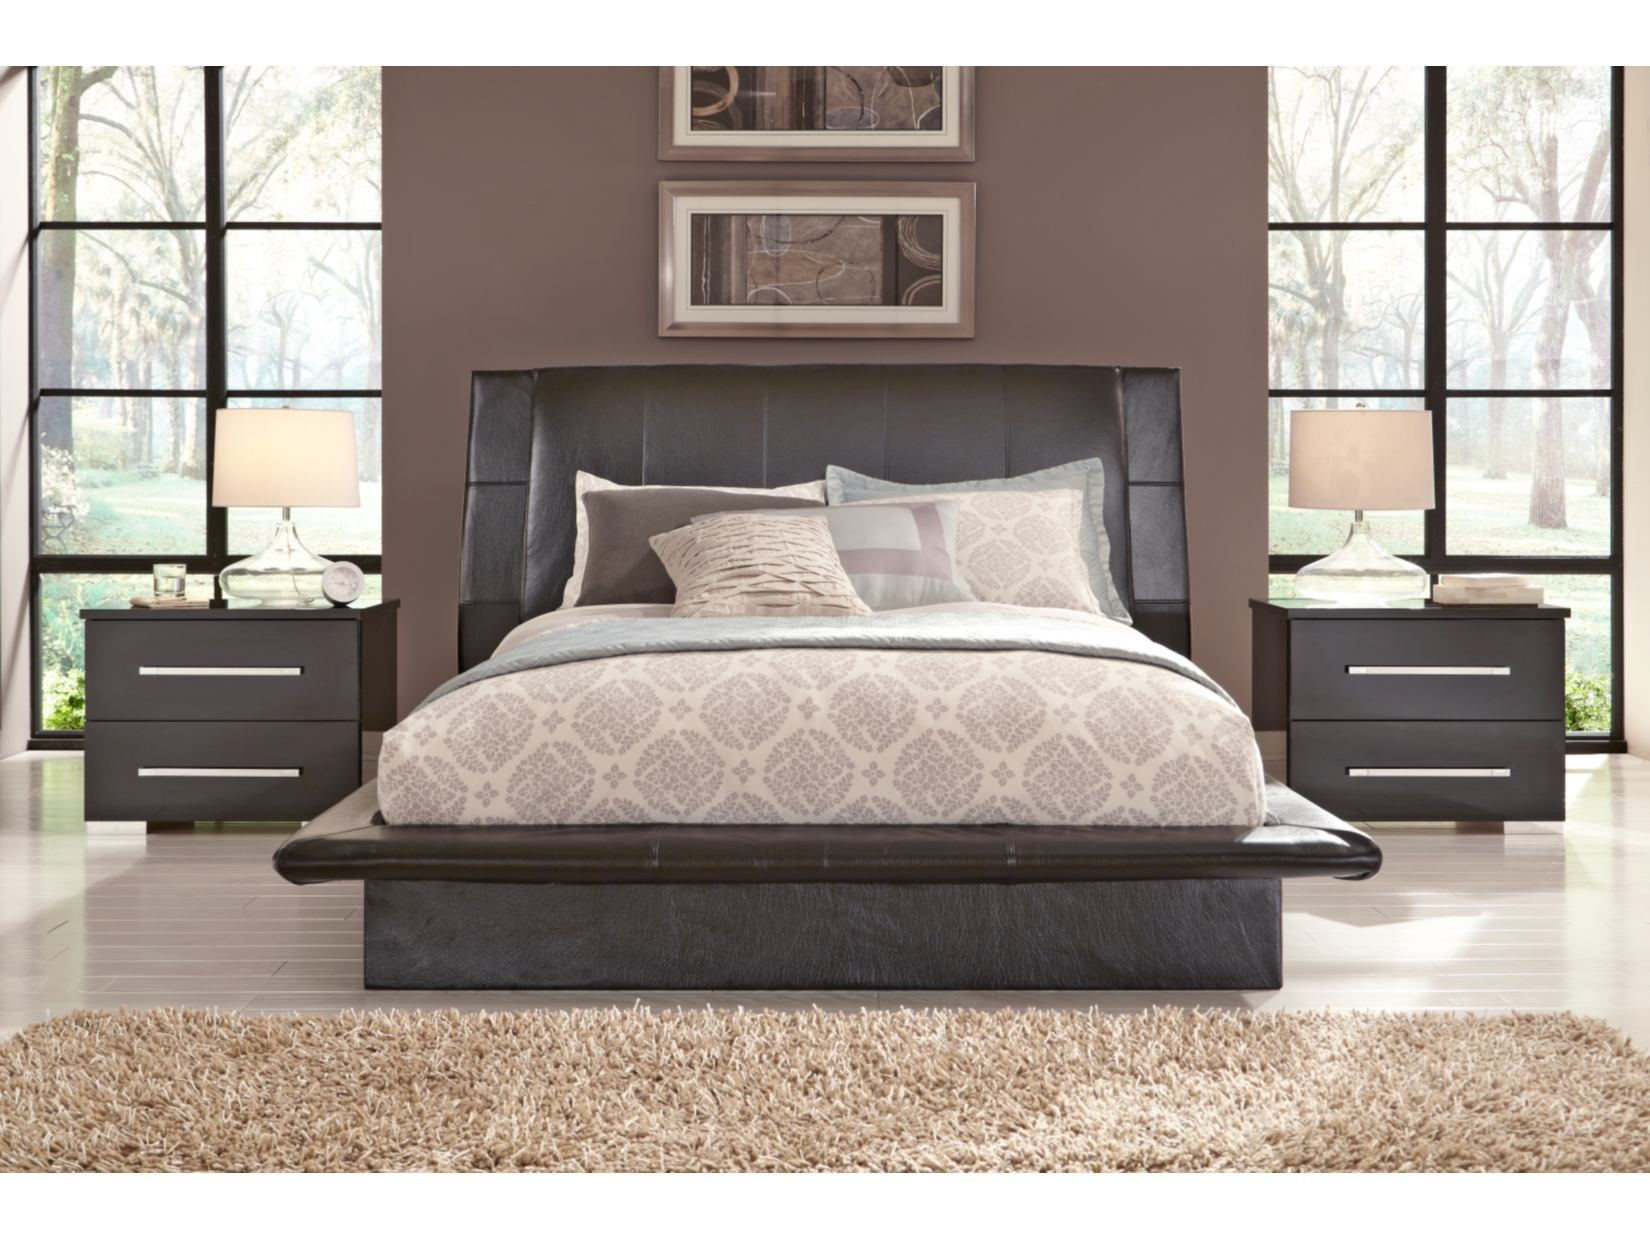 Dimora Queen Upholstered Bed  Value City Furniture  Furniture Classy Value City Furniture Bedroom Sets 2018